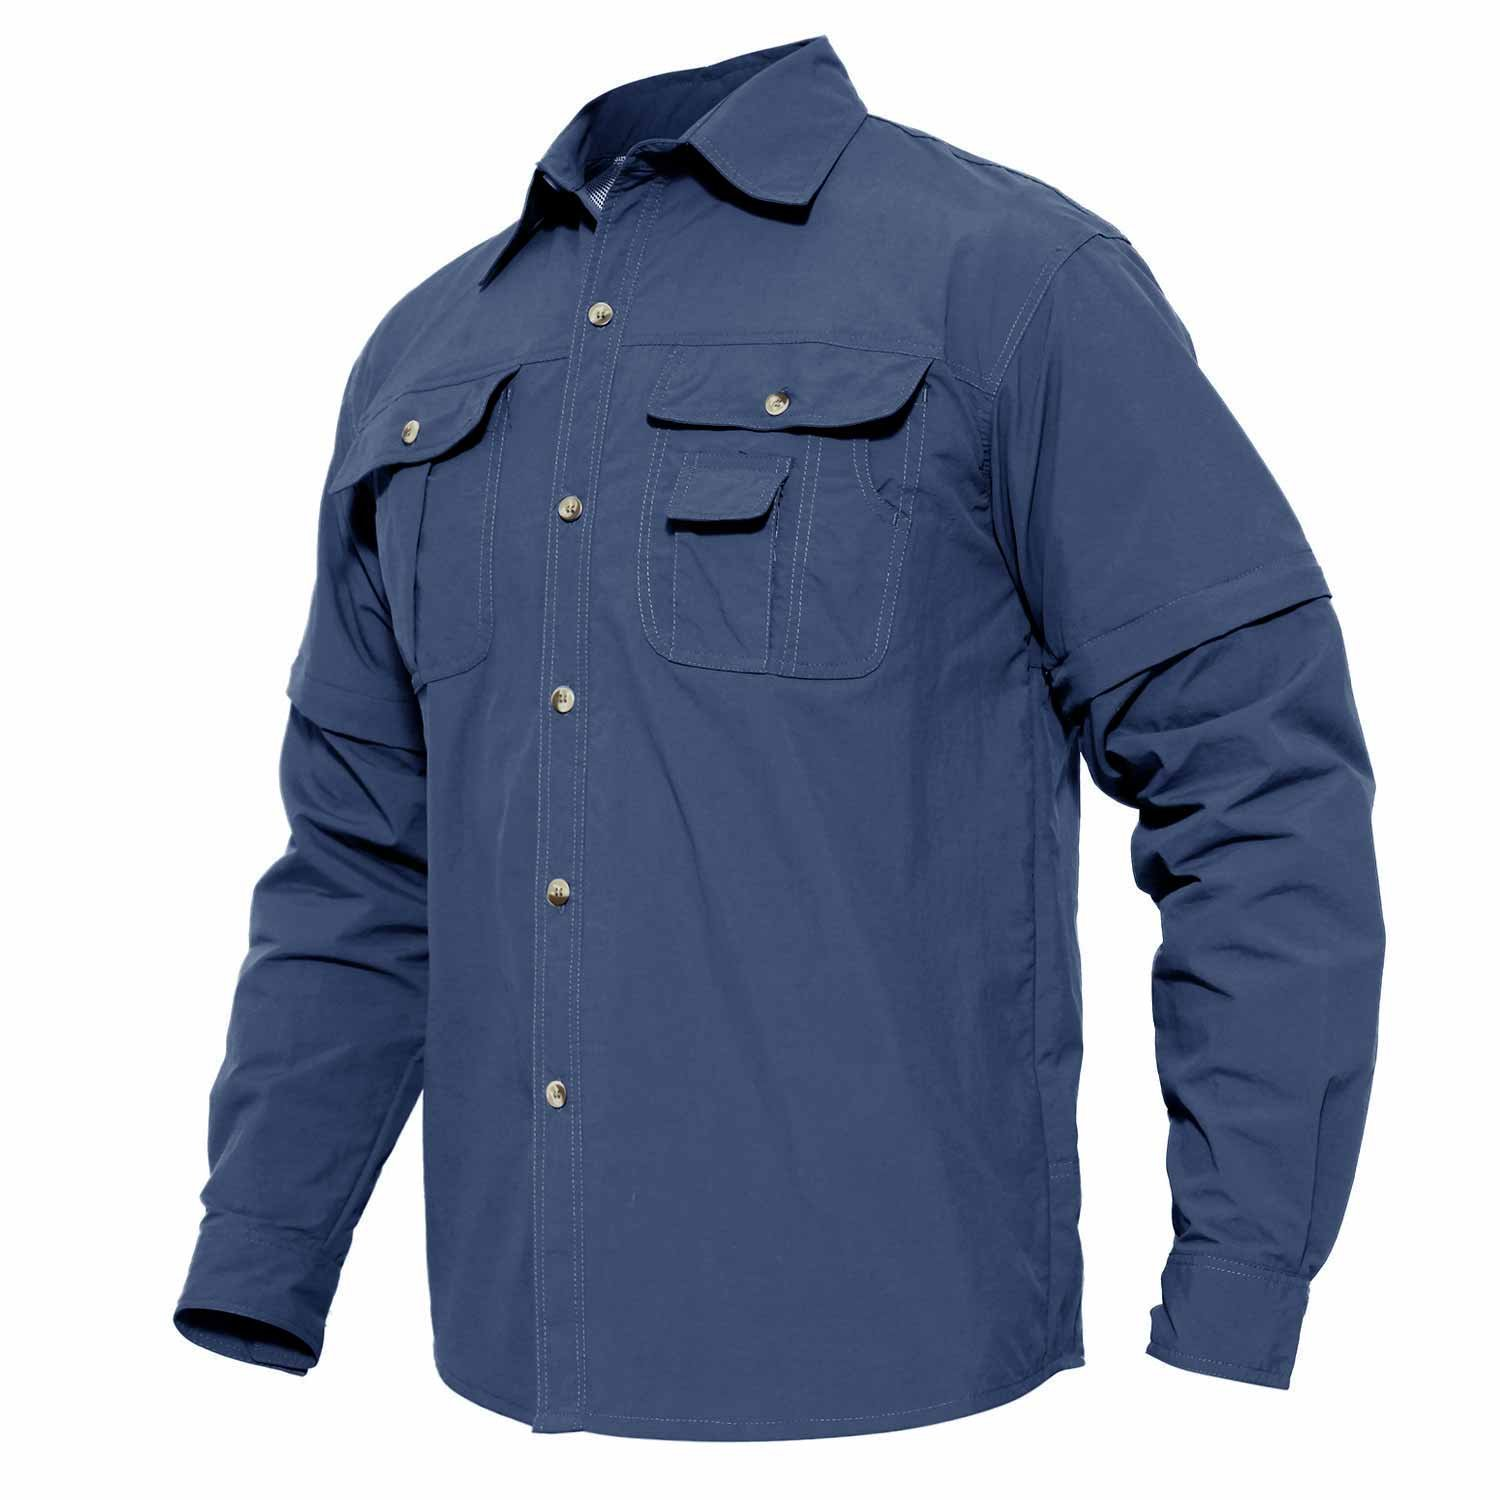 MAGCOMSEN Men's Highly Breathable and Quick Dry Long Sleeve Woven UPF Hunting Shirt with